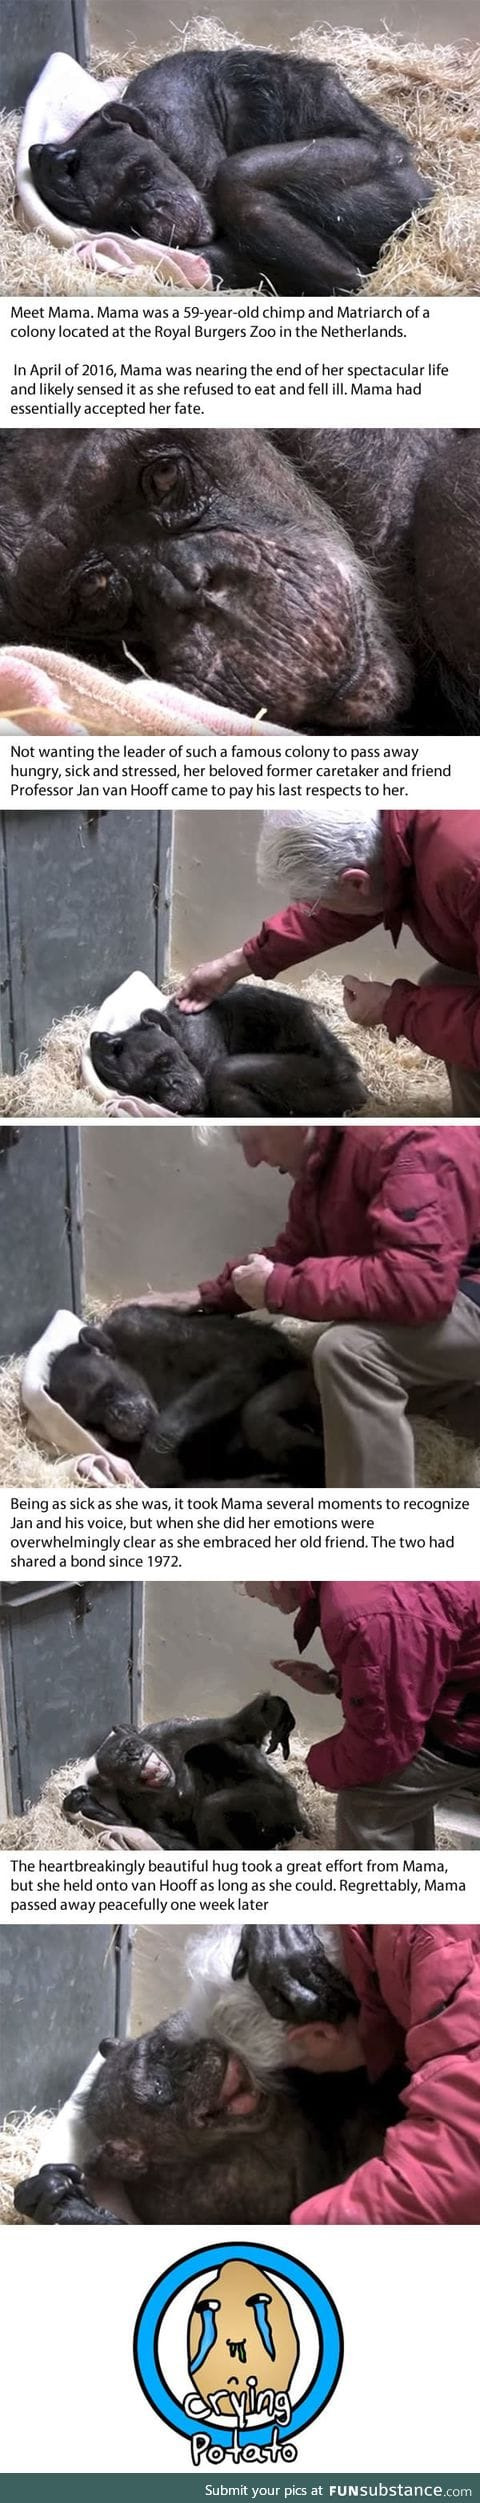 Dying 59-Year-Old Chimp Recognises Her Old Caretaker's Voice